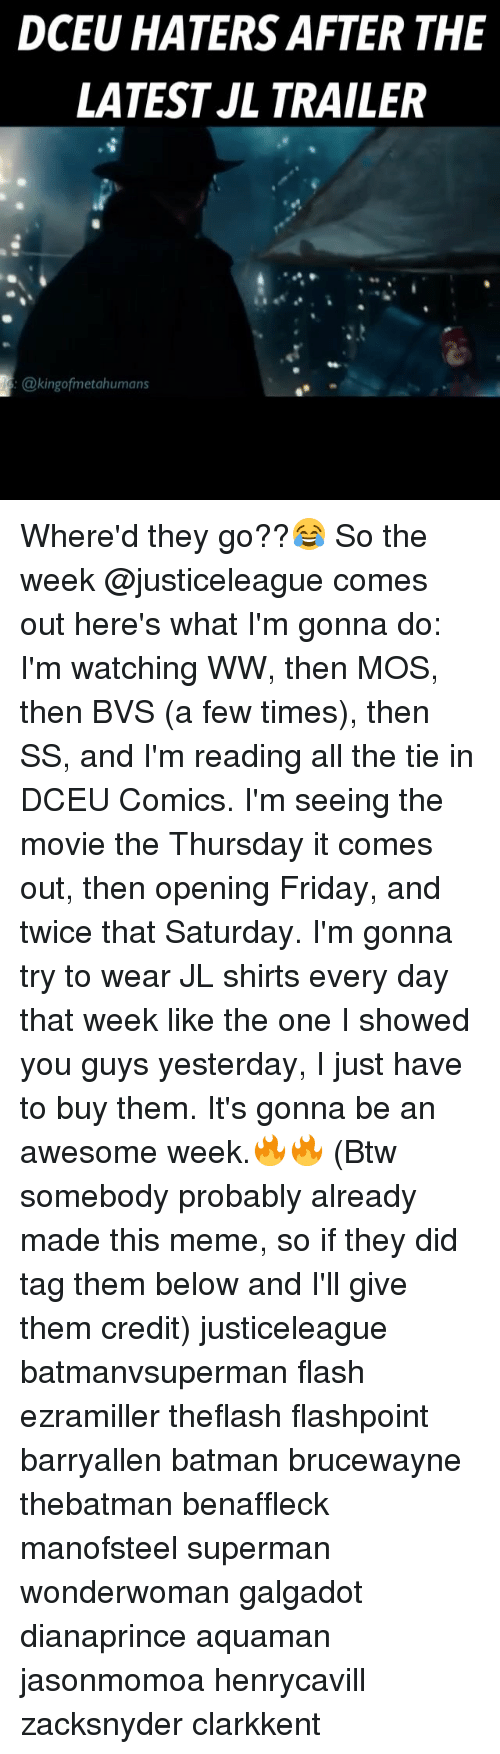 Batman, Friday, and Meme: DCEU HATERS AFTER THE  LATEST JL TRAILER  @kingofmetahumans Where'd they go??😂 So the week @justiceleague comes out here's what I'm gonna do: I'm watching WW, then MOS, then BVS (a few times), then SS, and I'm reading all the tie in DCEU Comics. I'm seeing the movie the Thursday it comes out, then opening Friday, and twice that Saturday. I'm gonna try to wear JL shirts every day that week like the one I showed you guys yesterday, I just have to buy them. It's gonna be an awesome week.🔥🔥 (Btw somebody probably already made this meme, so if they did tag them below and I'll give them credit) justiceleague batmanvsuperman flash ezramiller theflash flashpoint barryallen batman brucewayne thebatman benaffleck manofsteel superman wonderwoman galgadot dianaprince aquaman jasonmomoa henrycavill zacksnyder clarkkent